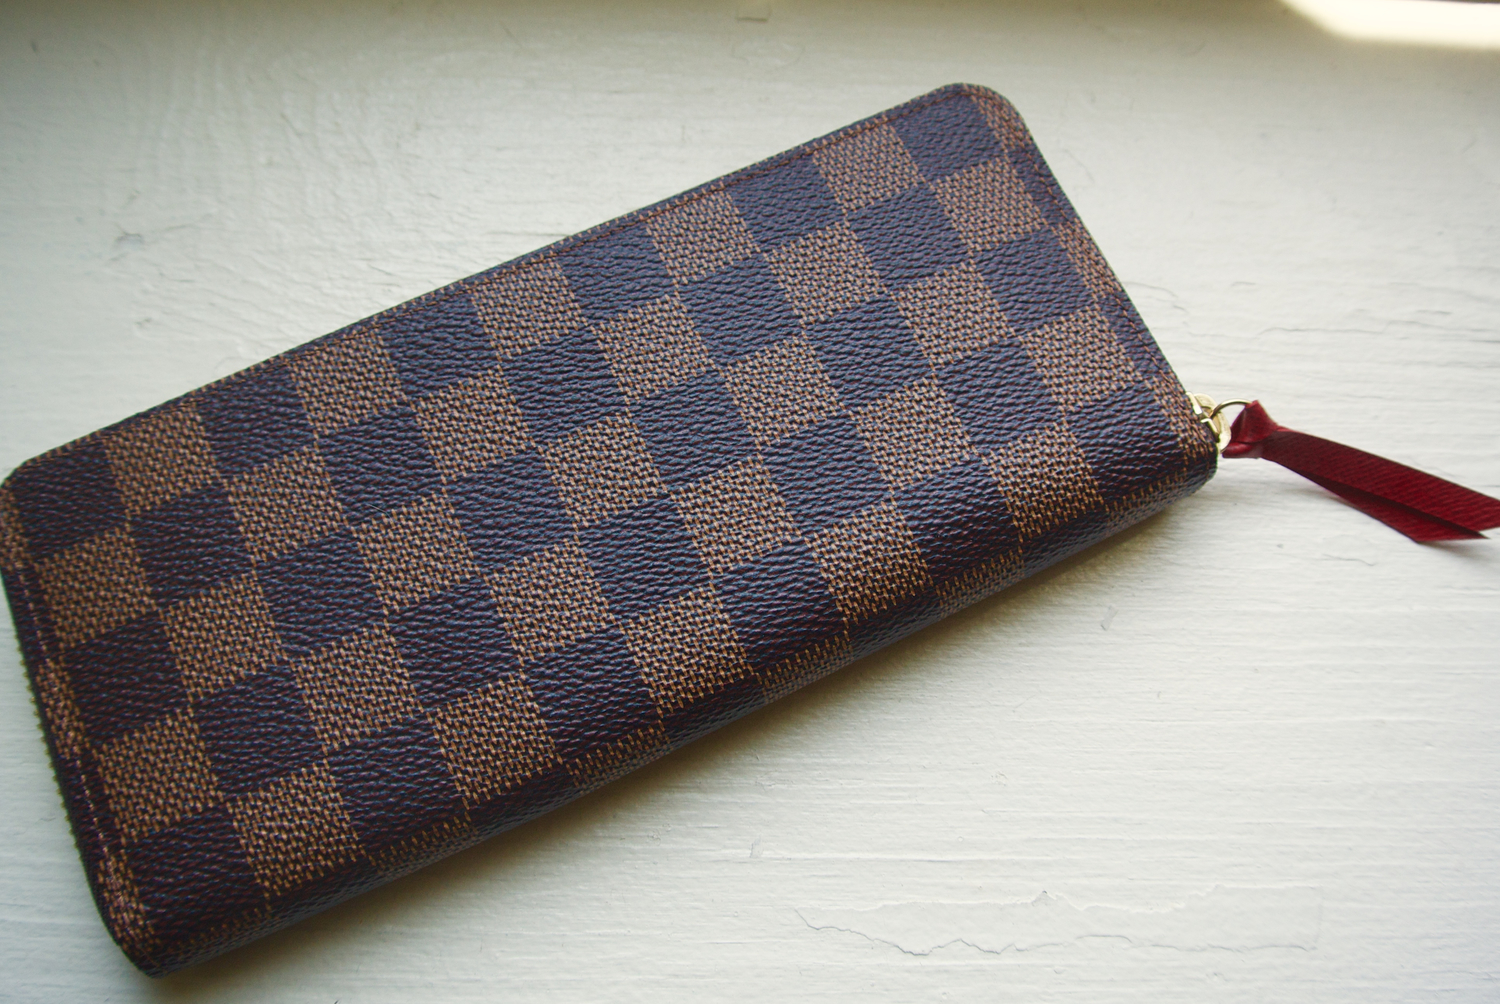 Louis Vuitton Damier Ebene Clemence Wallet — The Shoulder Strap 4b527a73d77